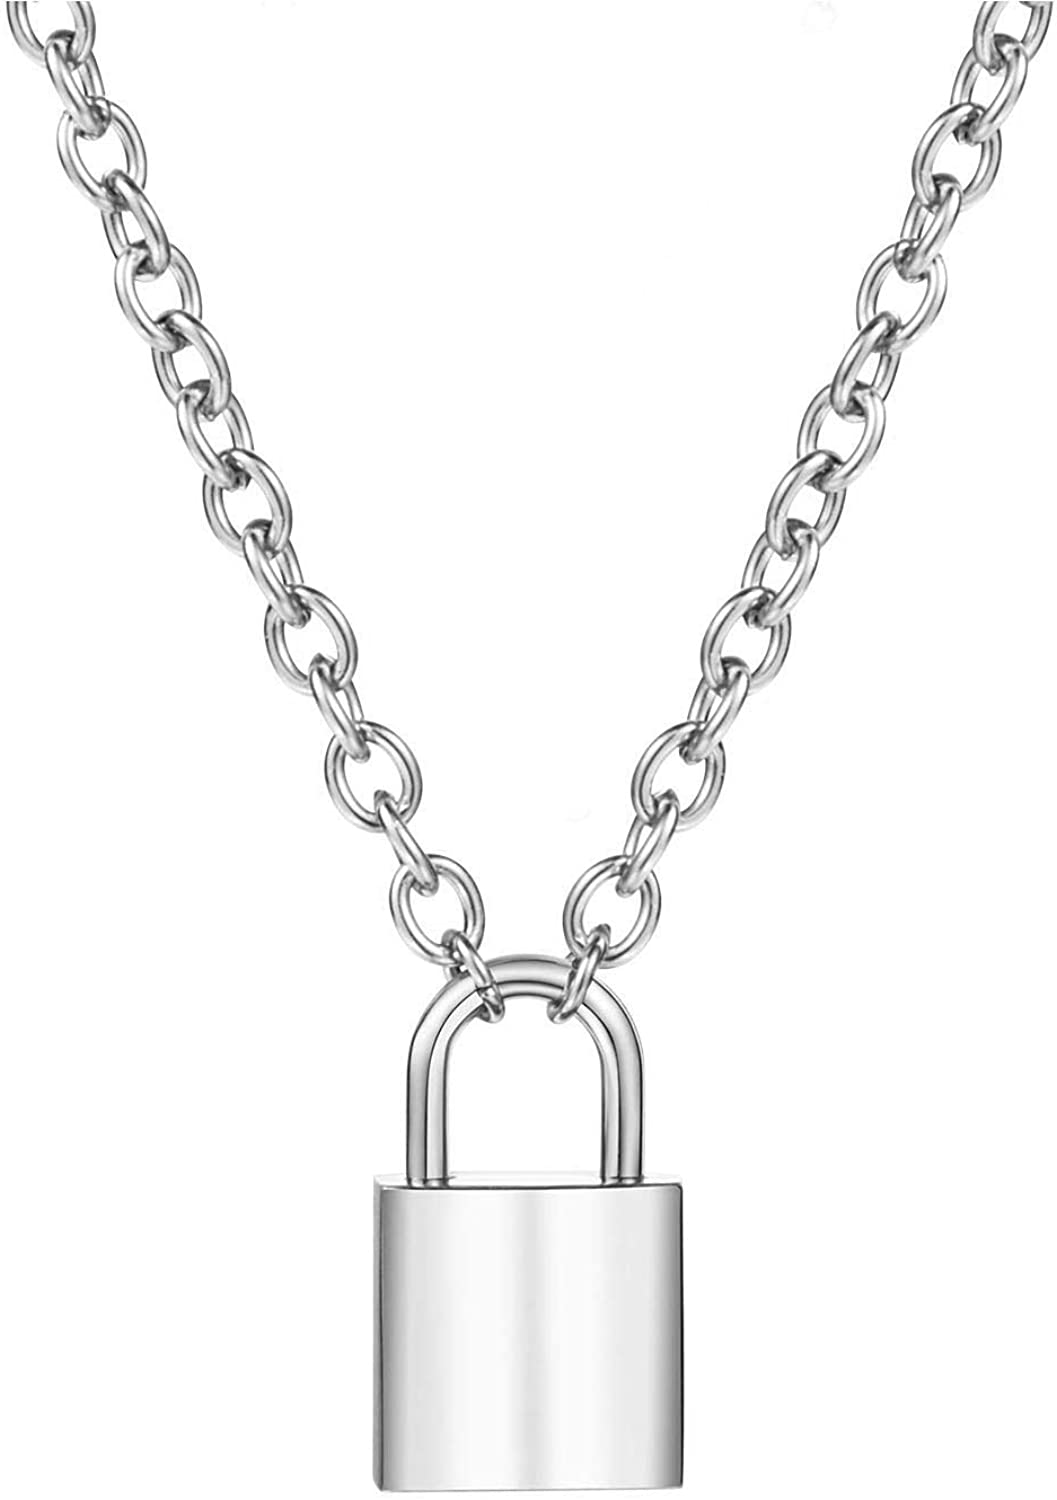 Firsteel Punk Hiphop Rock New popularity Gothic Style Lock Pen Necklace Key Fort Worth Mall and